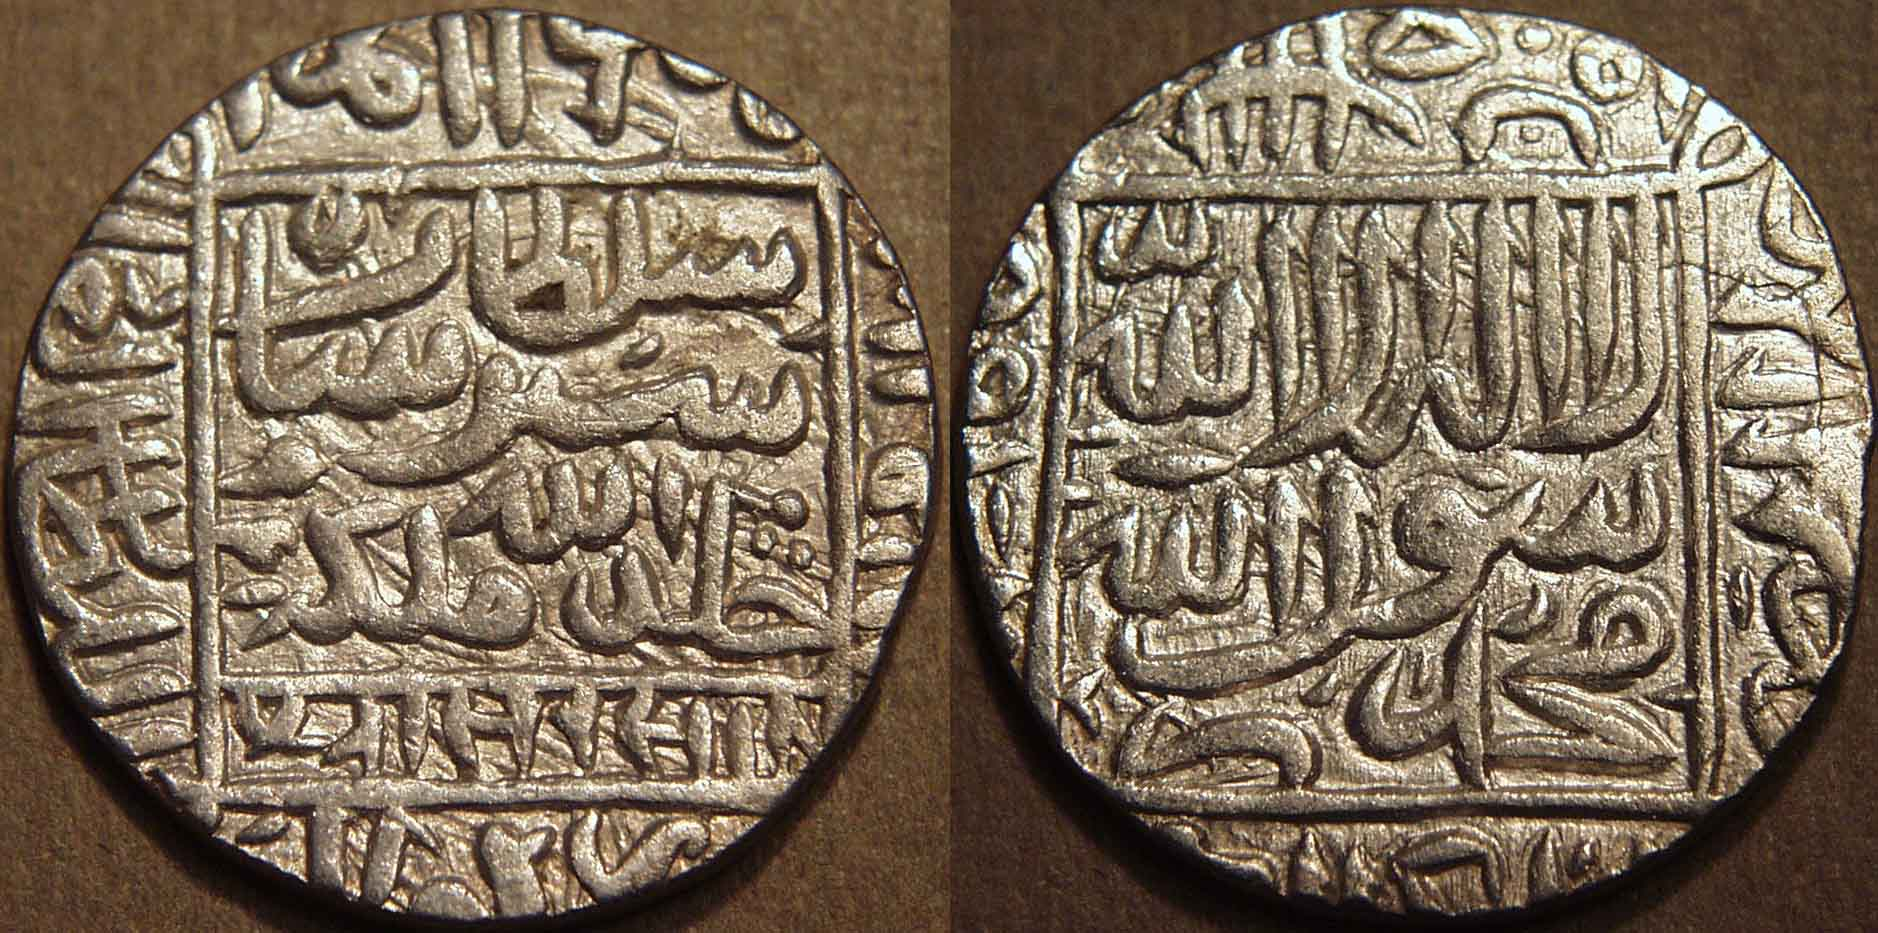 delhi sultanate The delhi sultanate was a muslim kingdom based mostly in delhi and the punjab region [7] that stretched over large parts of the indian subcontinent for 320 years (1206–1526).